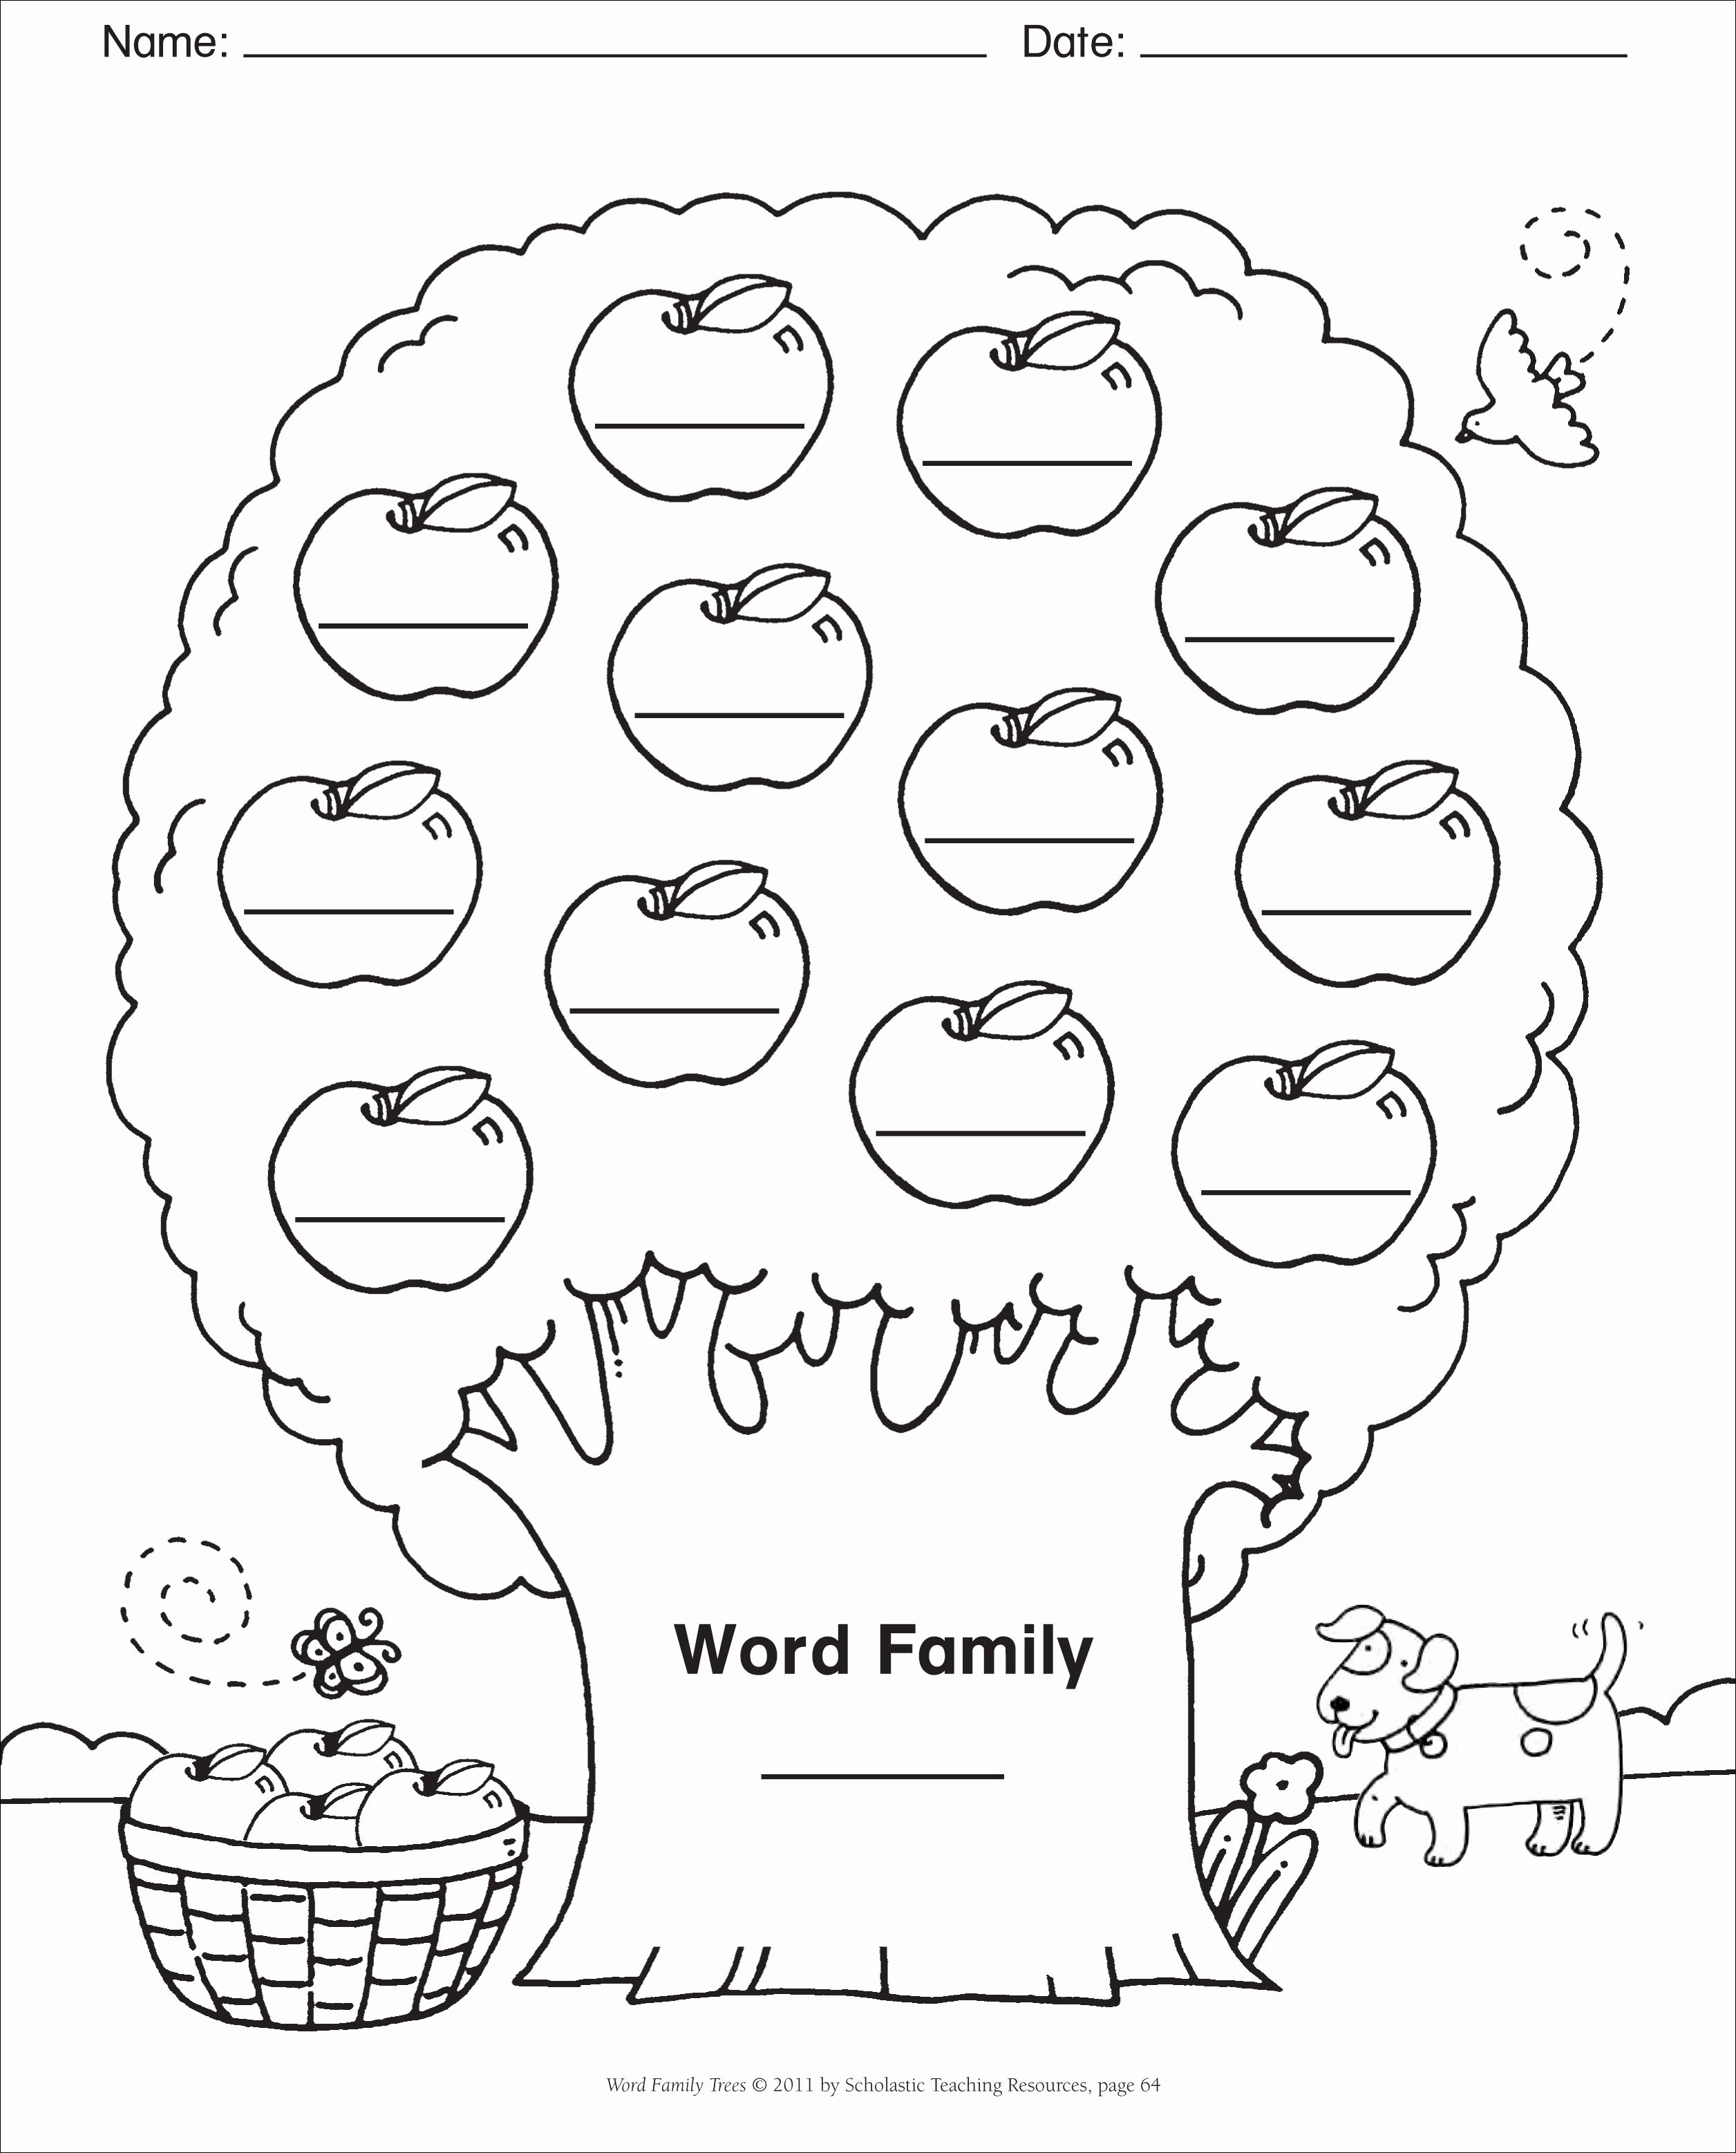 Kindergarten Family Tree Template Unique Word Family Template